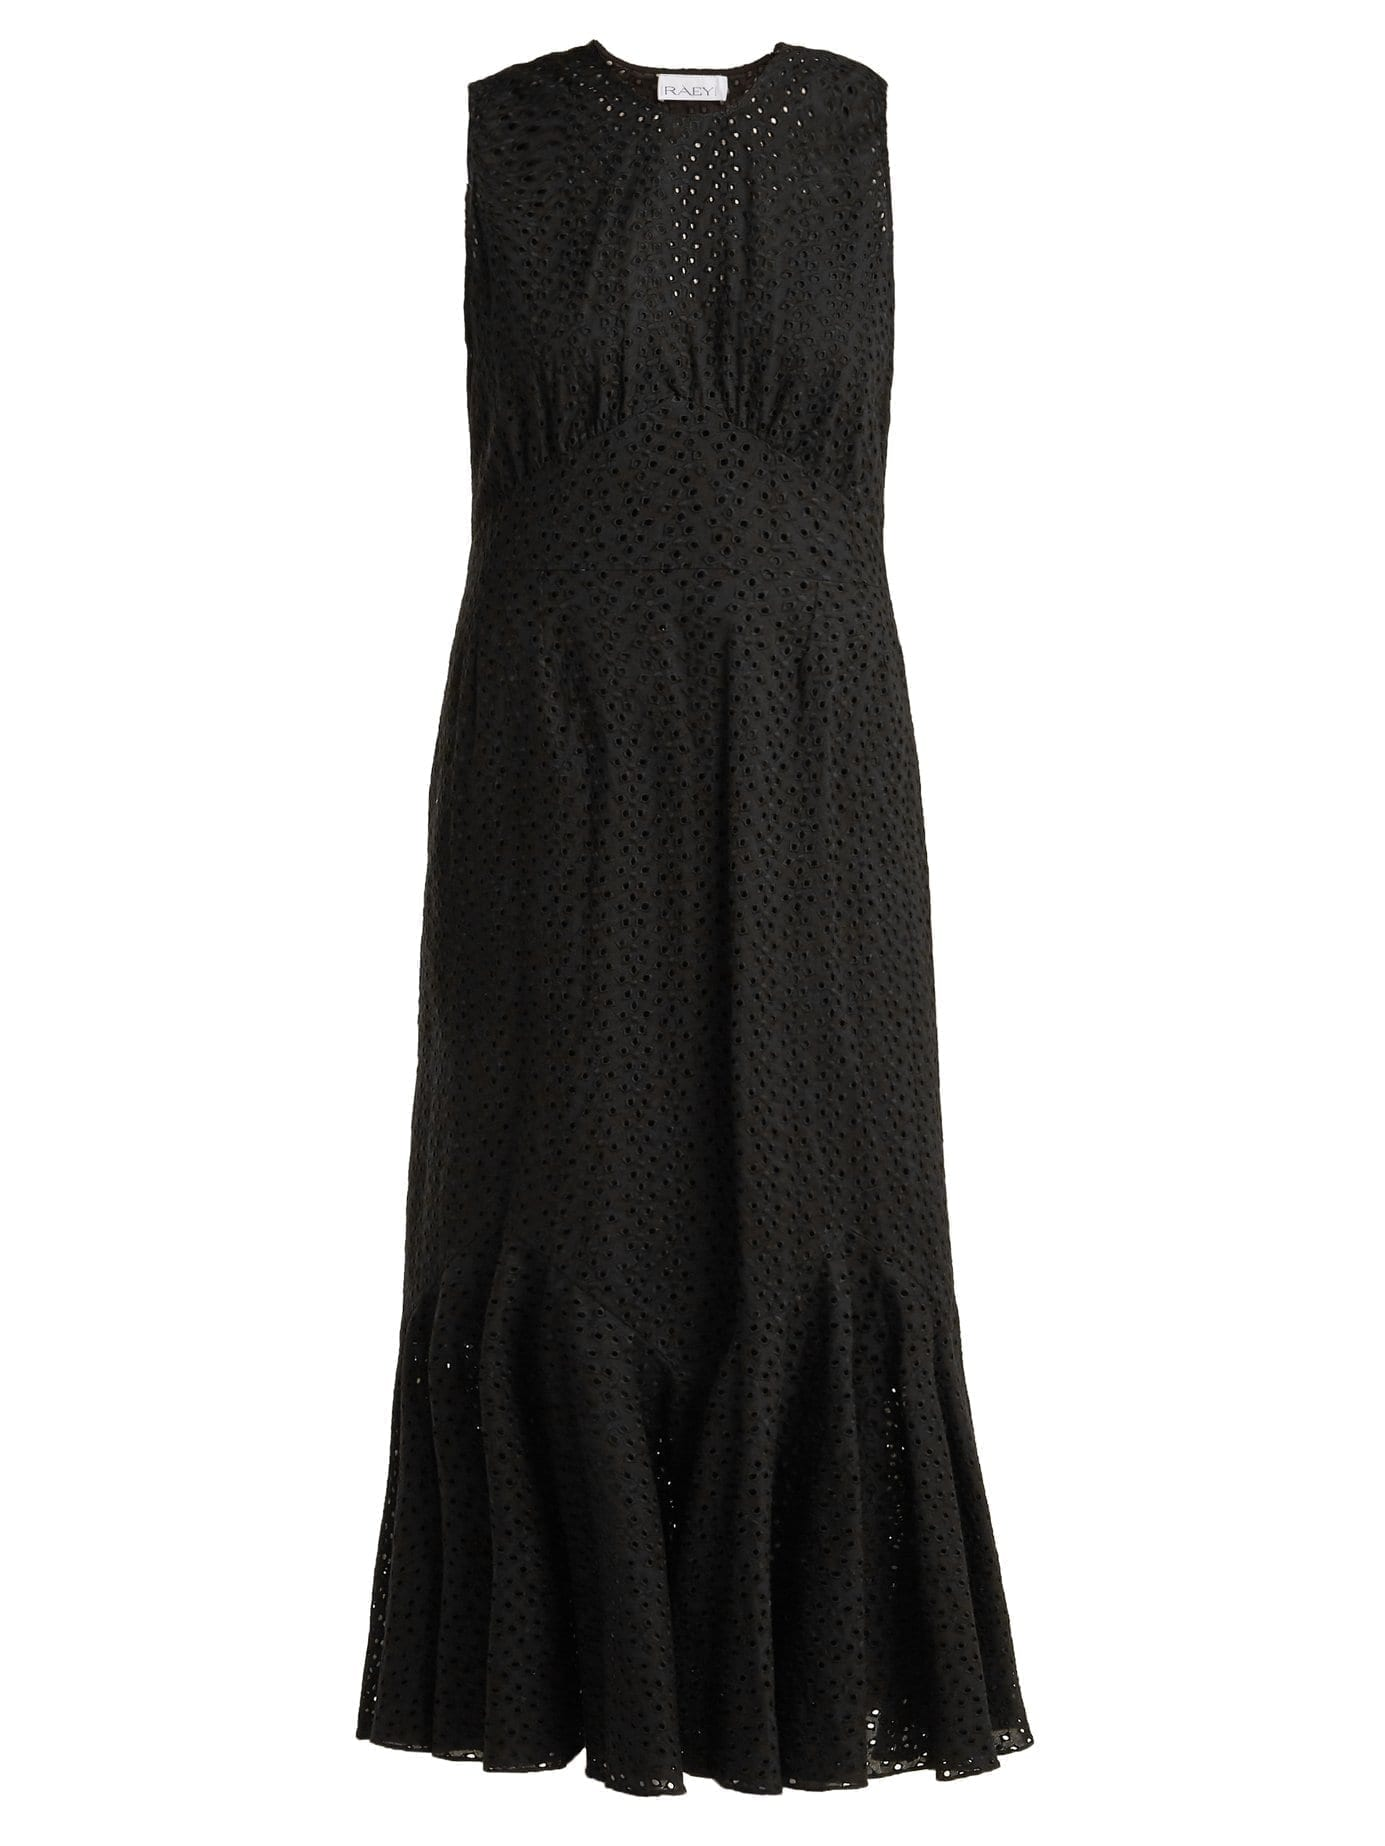 RAEY Broderie Anglaise Fishtail Black Dress